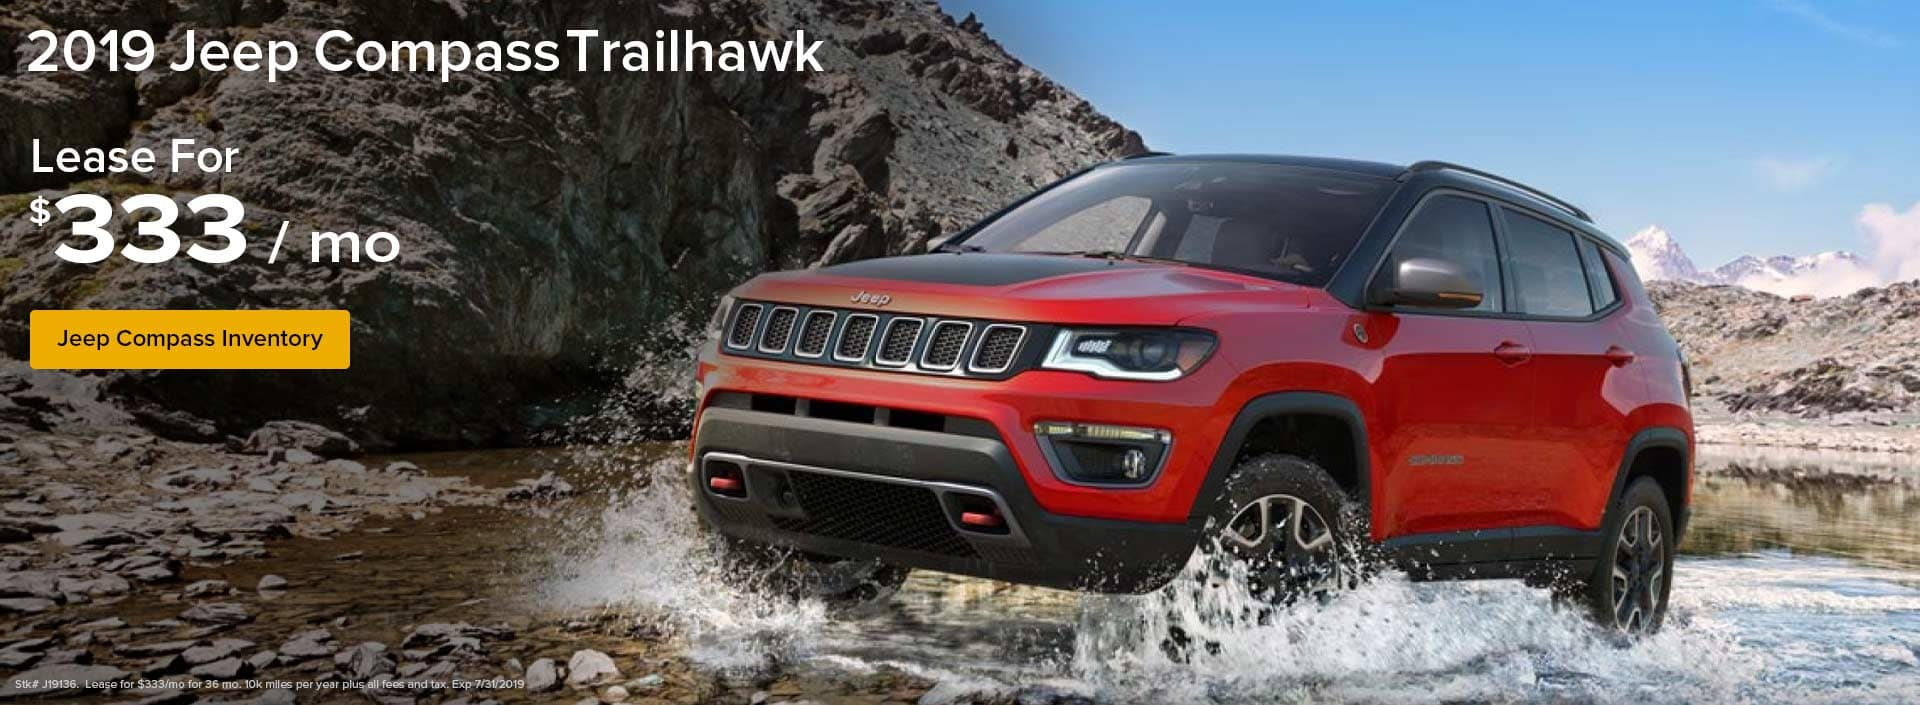 Lease a Jeep Compass for $333/mo